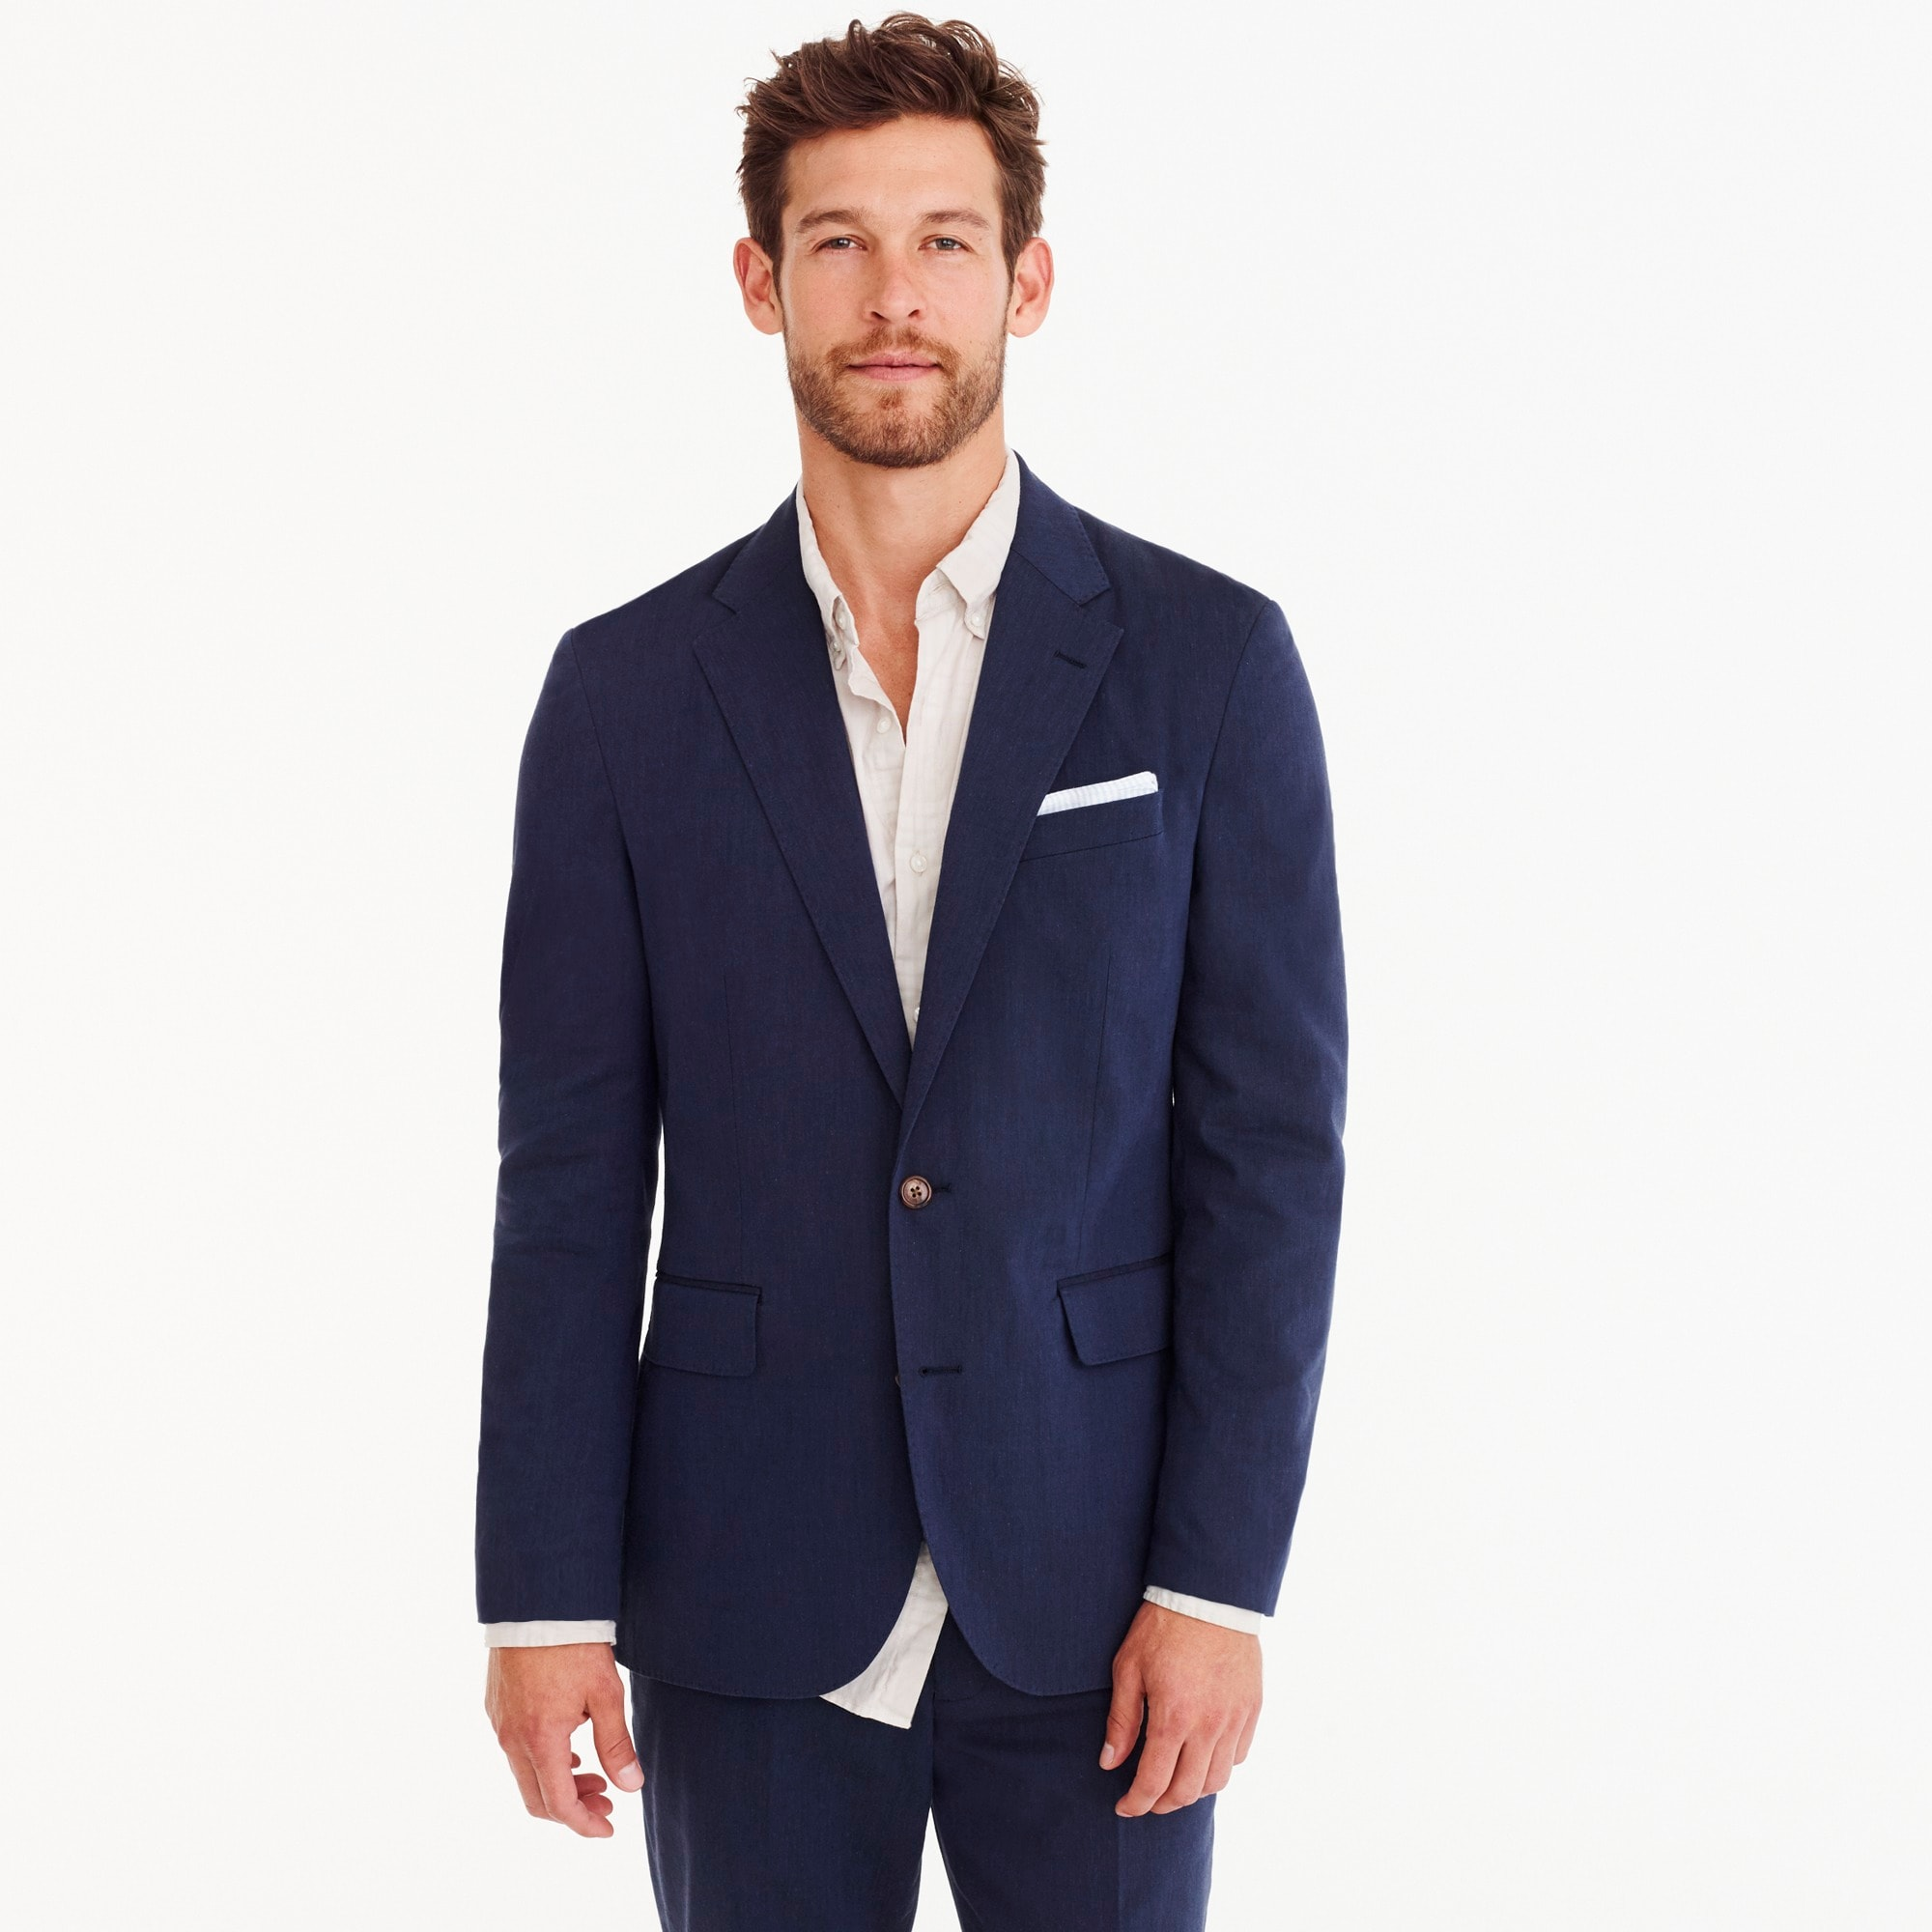 Image 1 for Ludlow Classic-fit unstructured suit jacket in stretch cotton